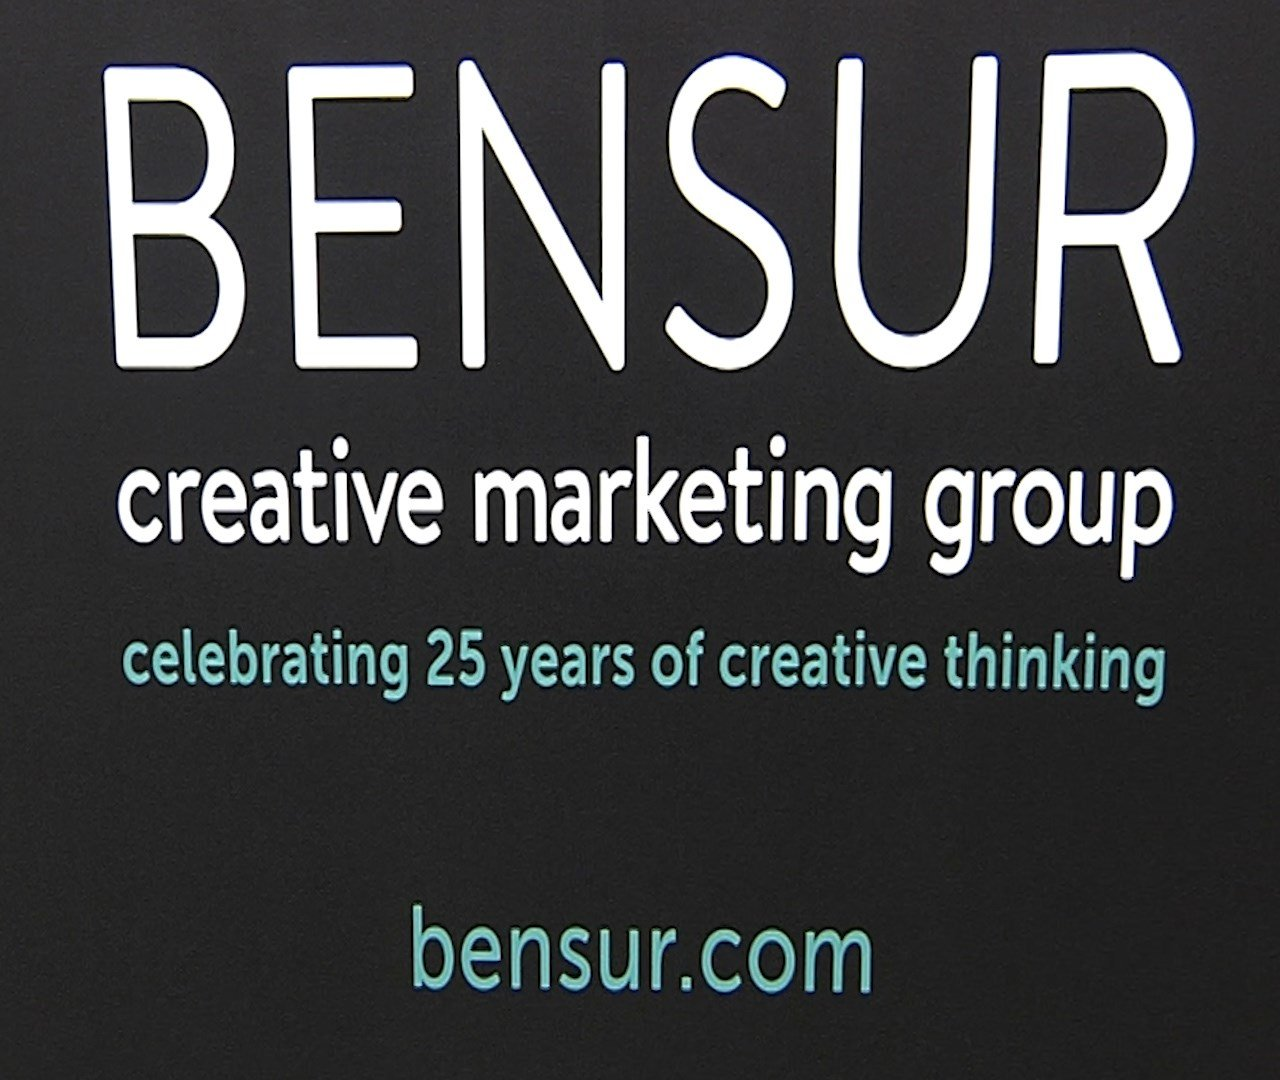 Bensur Creative Marketing Group